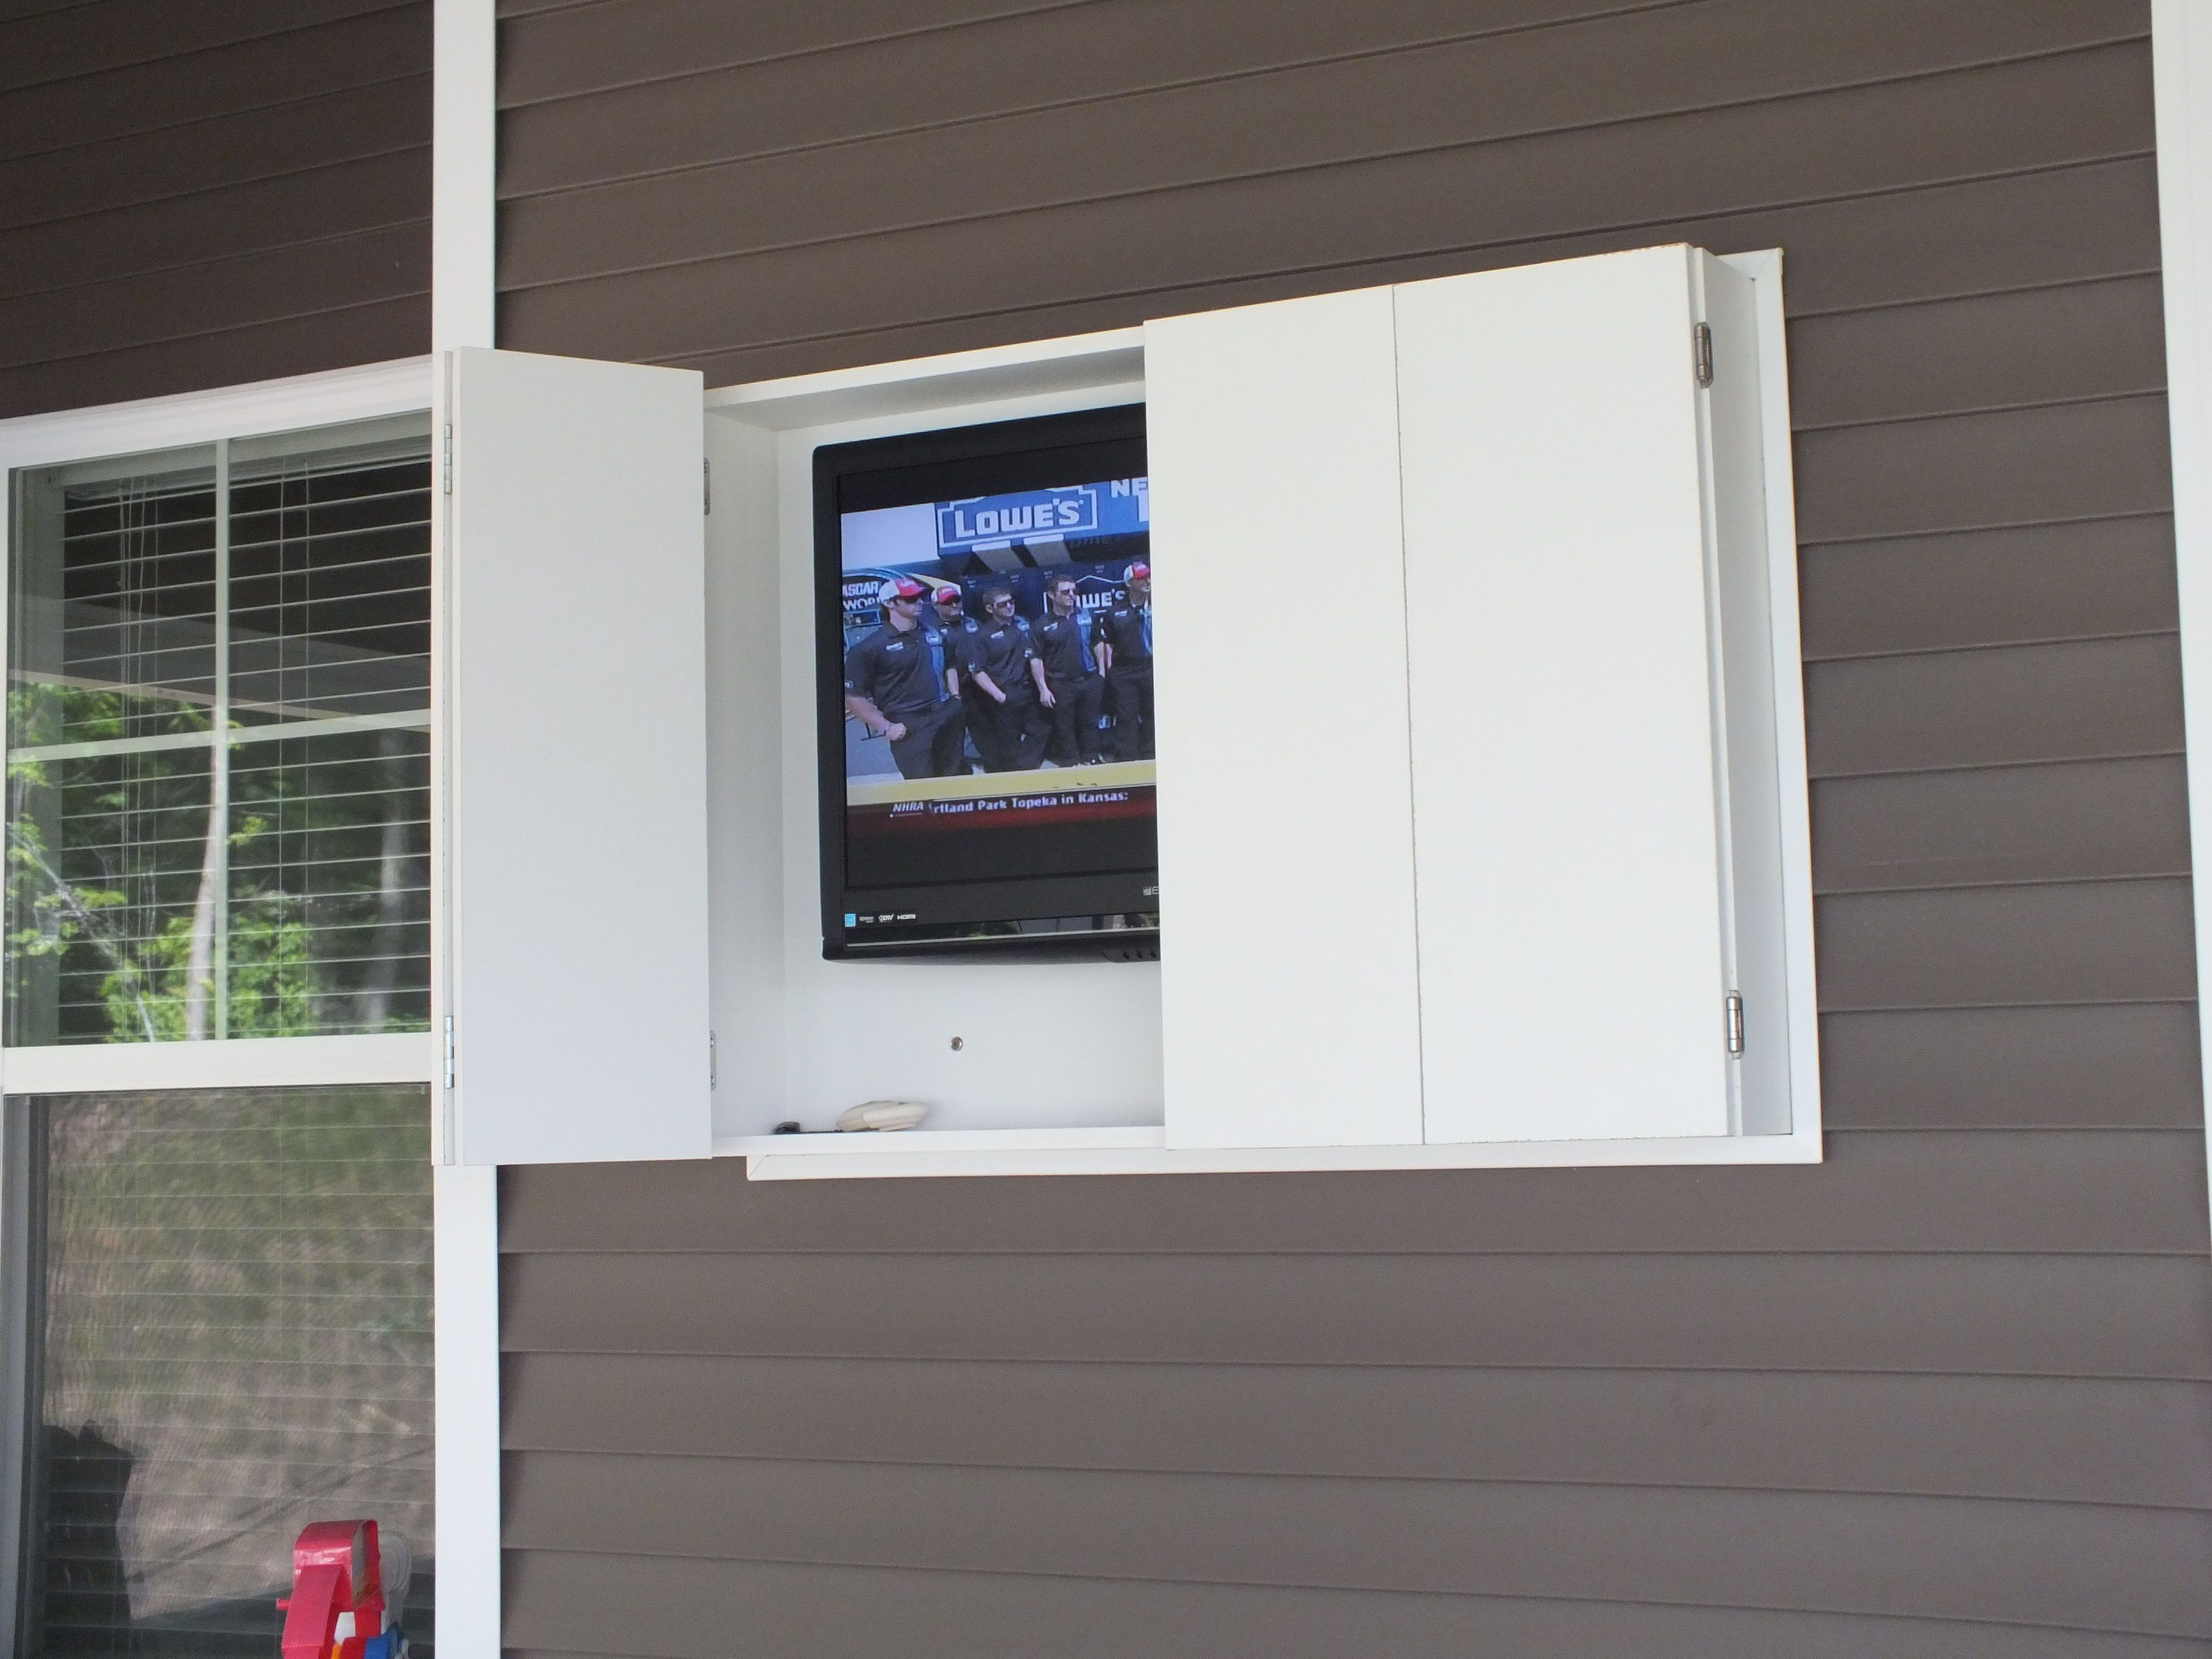 Pin By Shannon Elizabeth On Storage Ideas Outdoor Tv Cabinet Outdoor Tv Enclosure Tv Enclosure